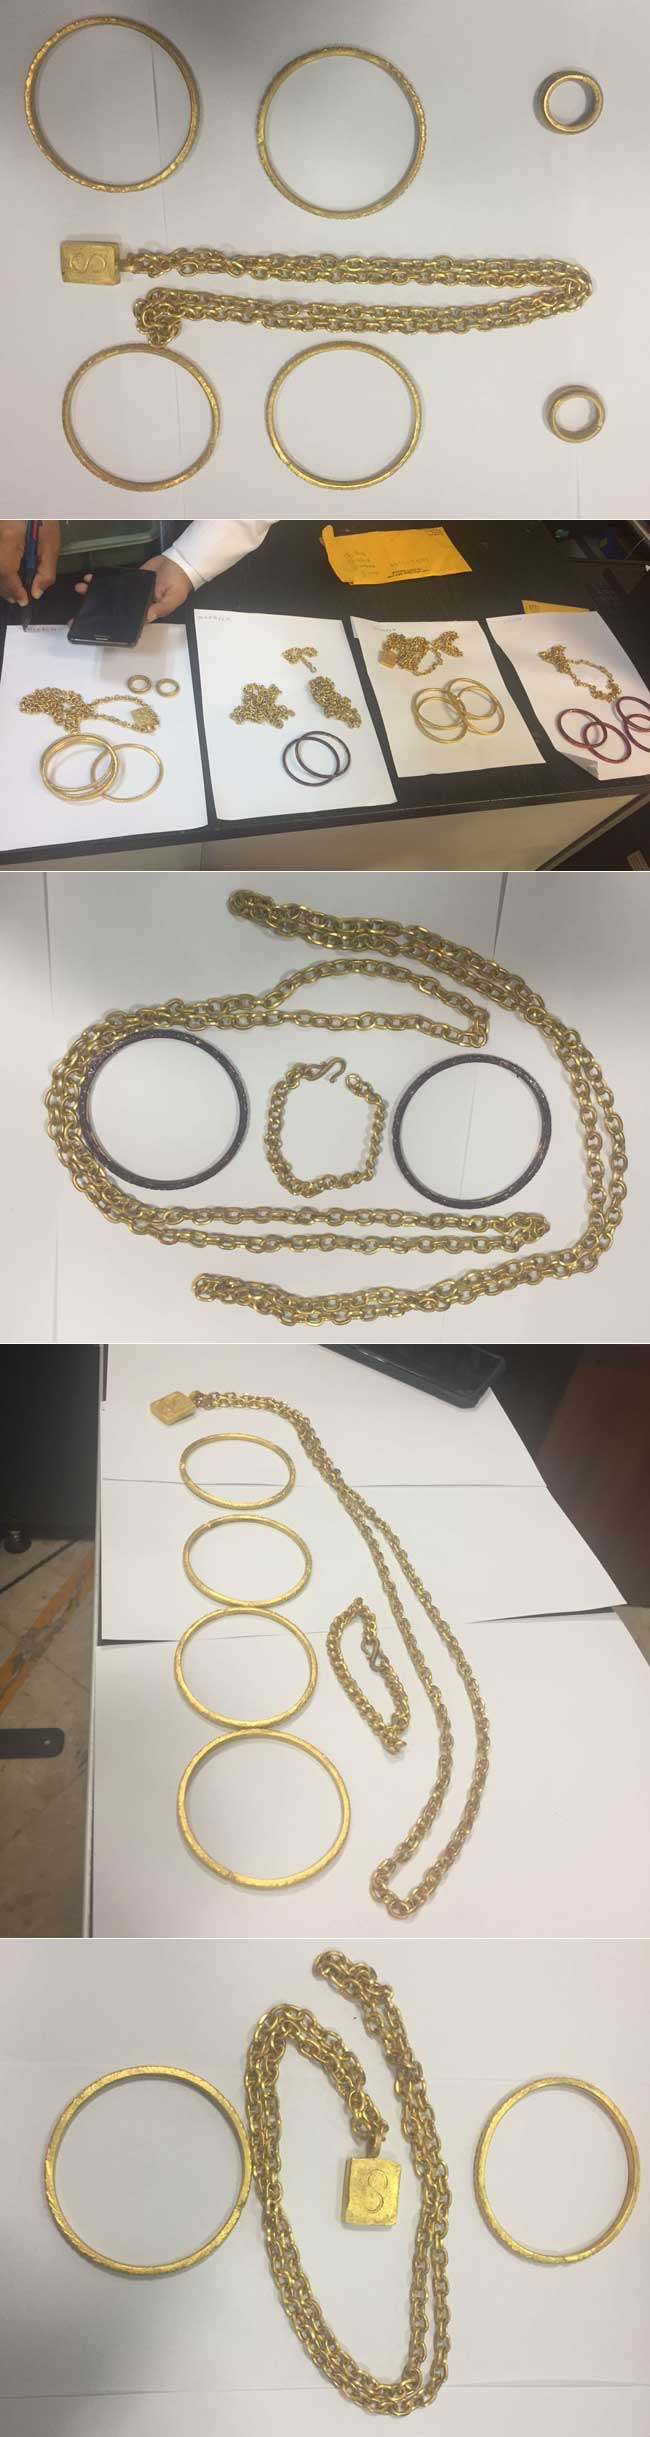 Four women nabbed with gold jewellery worth nearly Rs 10 million